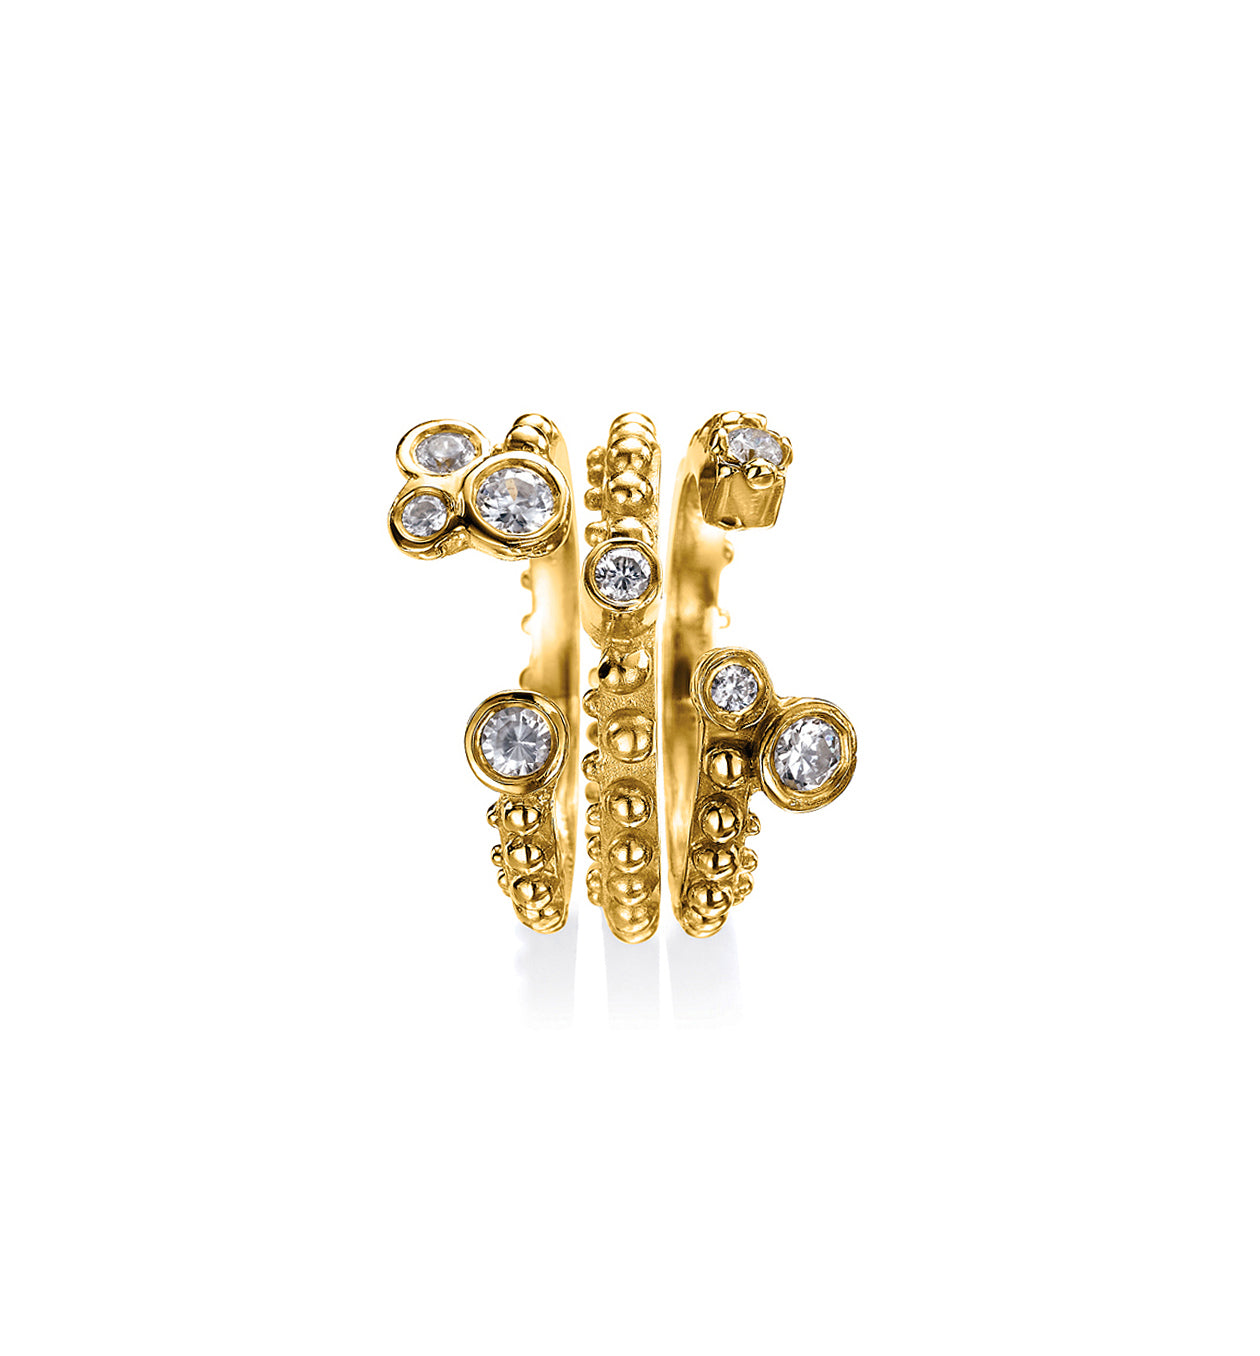 Boheme Lea + Crowns Diamond Rings Set